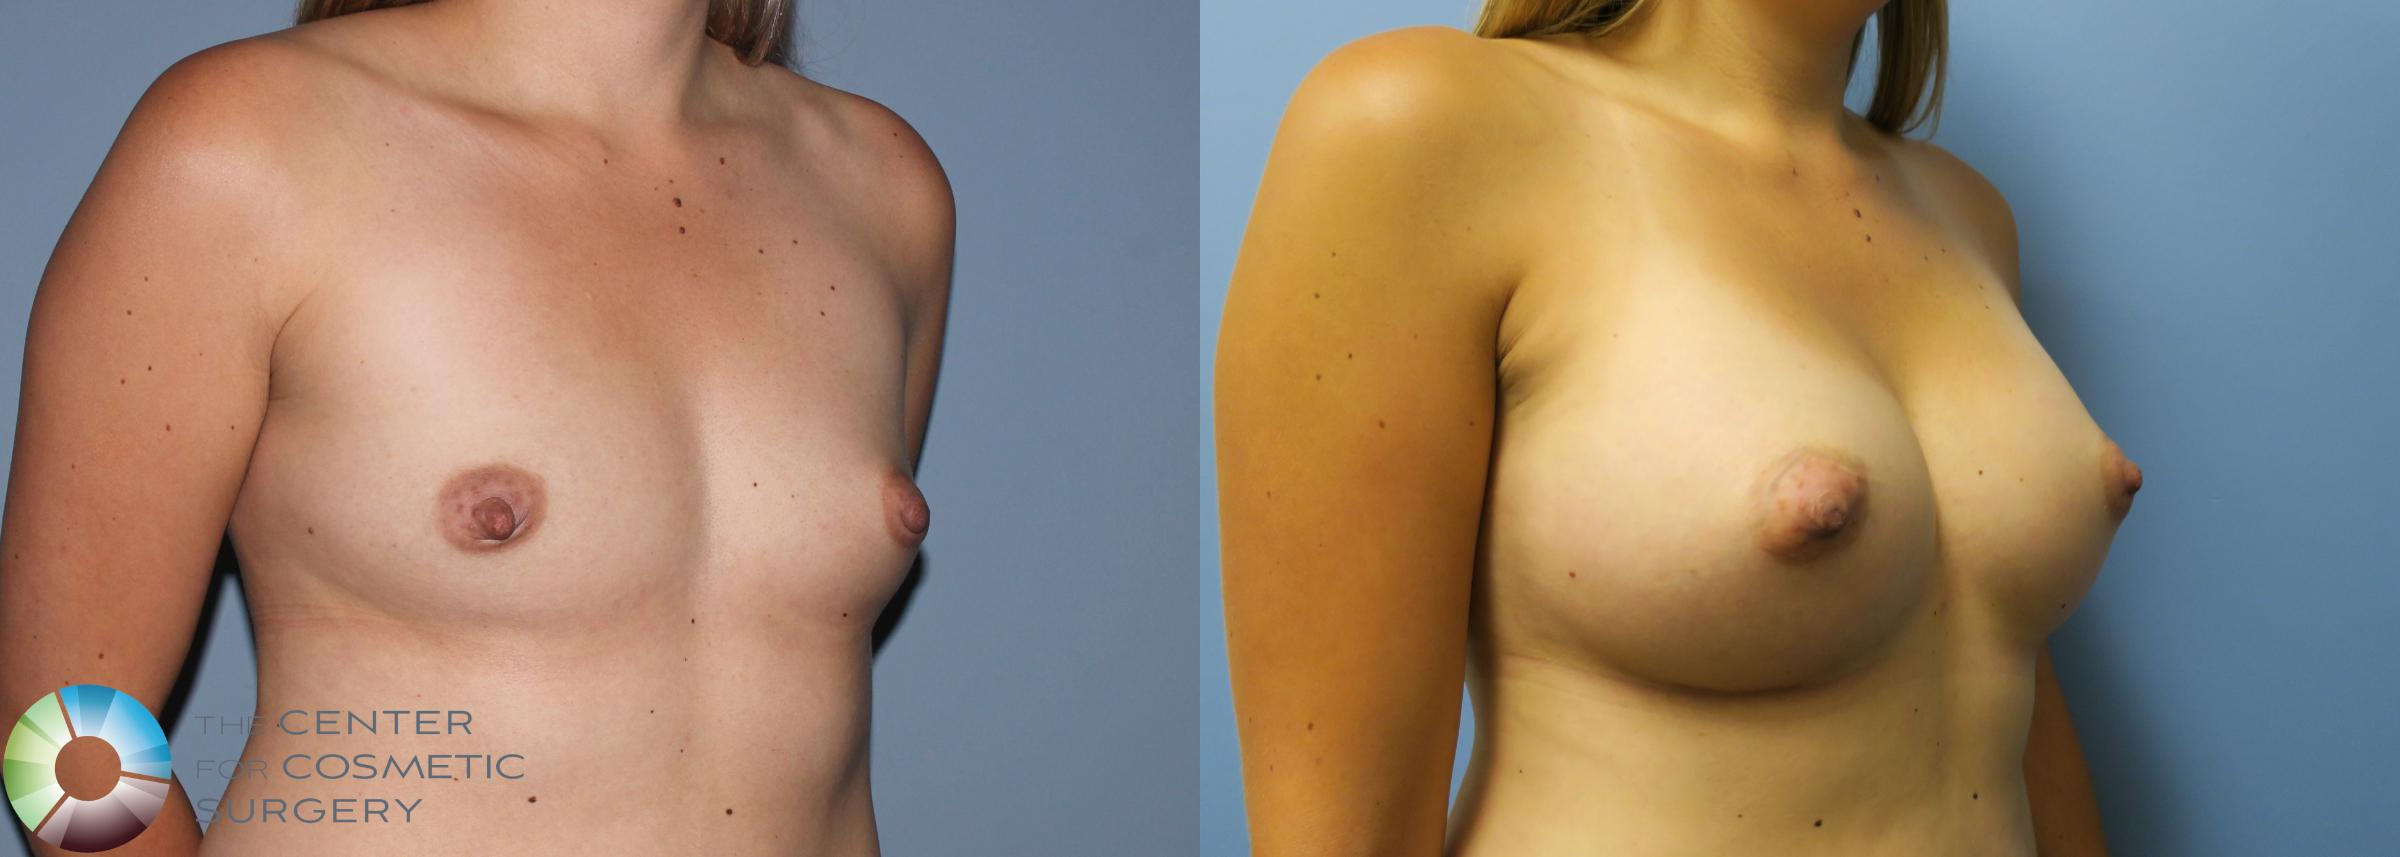 Breast Augmentation Case 762 Before & After View #2 | Golden, CO | The Center for Cosmetic Surgery